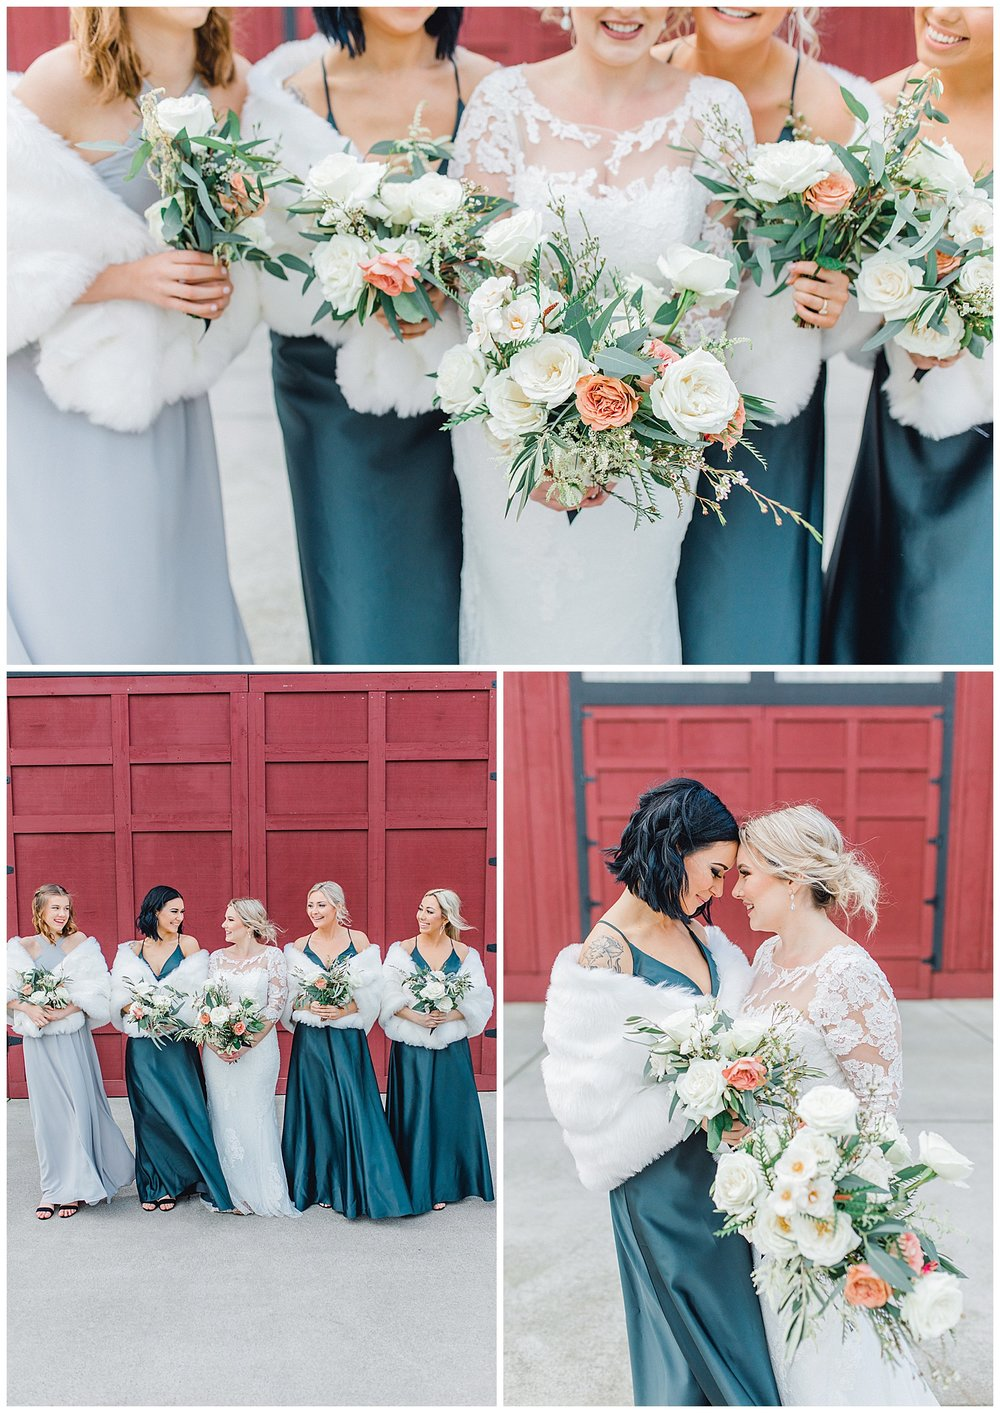 ERC-7708_A beautiful winter wedding in Snohomish, Washington at Thomas Family Farm was simply perfect.  This rustic and modern styled wedding was dripping with romance and photographed by Emma Rose Company, a pacific northwest wedding photographer..jpg